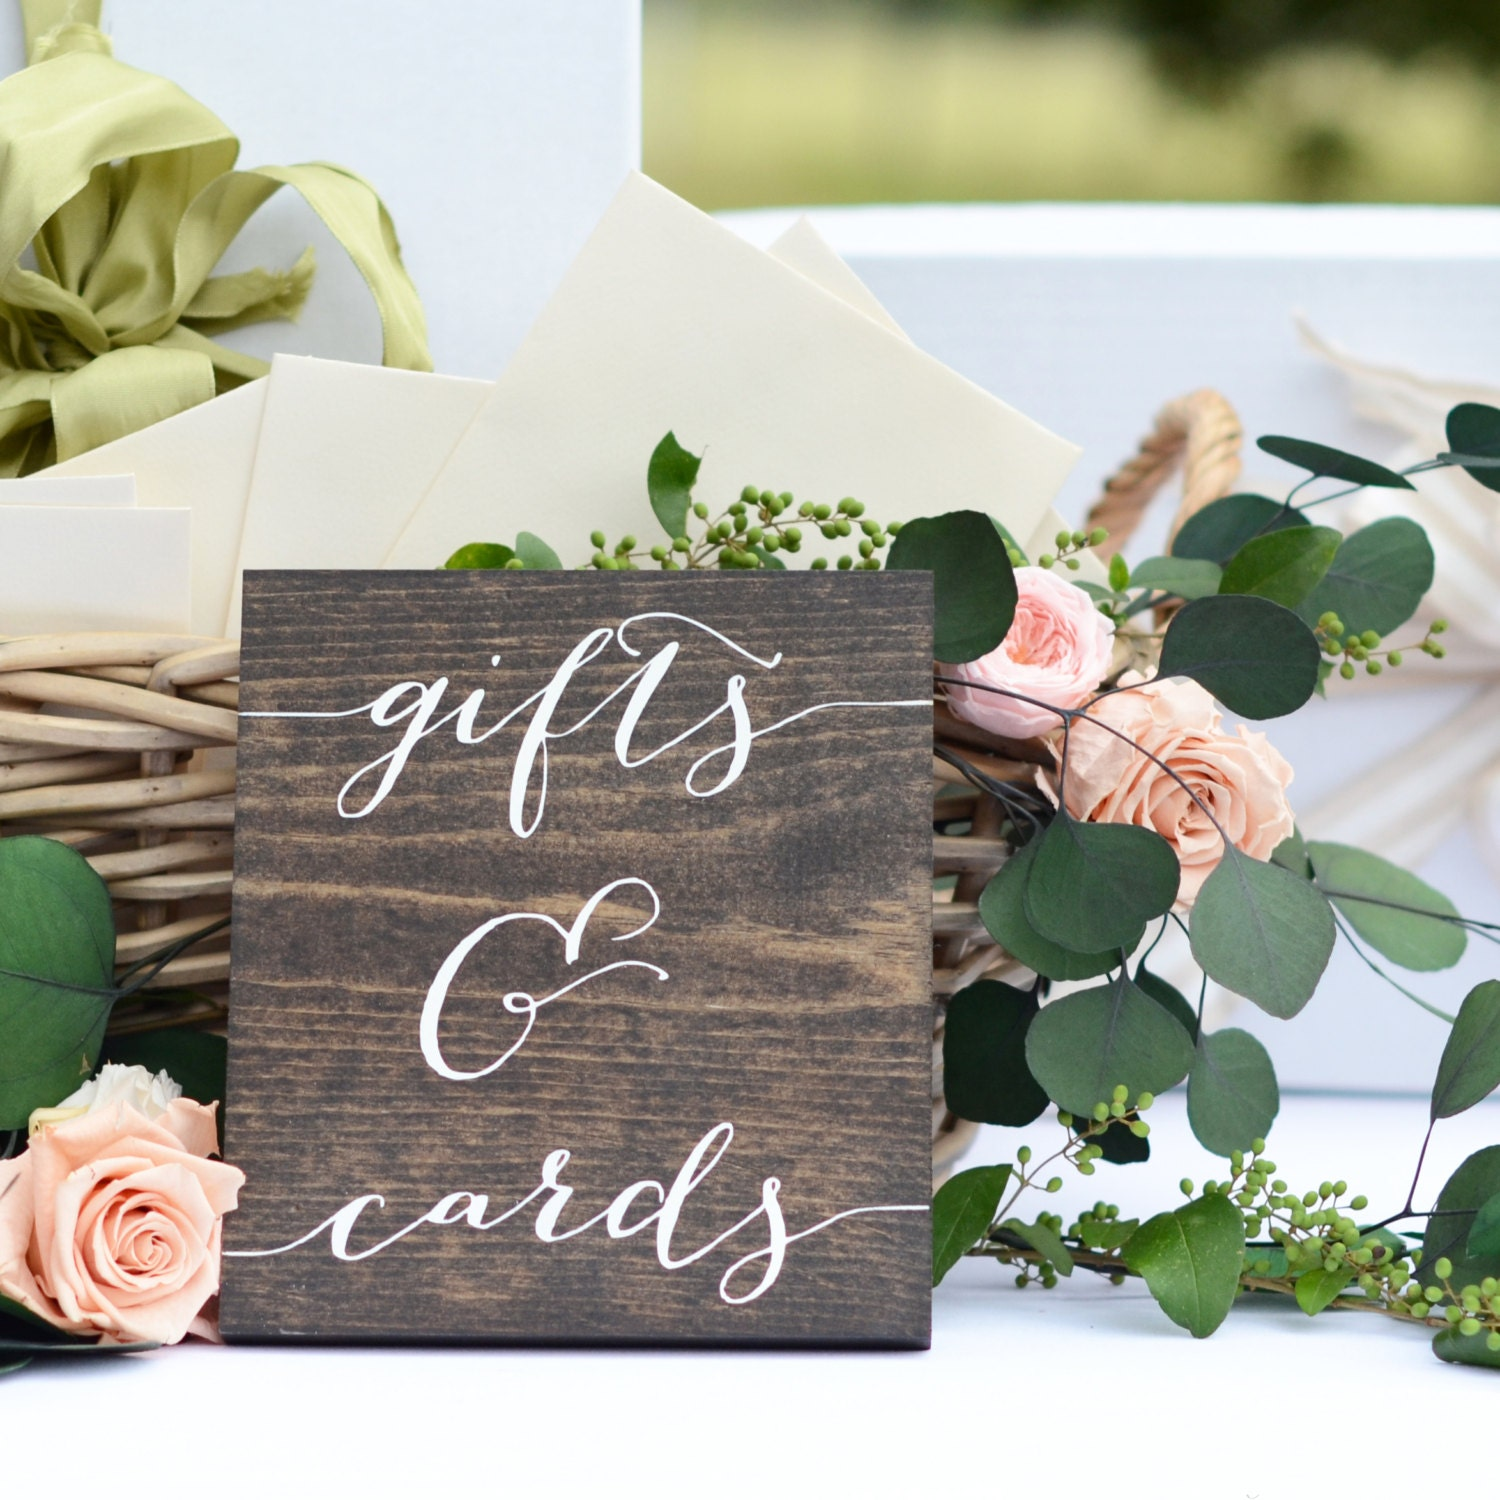 Gifts and Cards Sign Wedding Gift Table Sign Gifts Sign